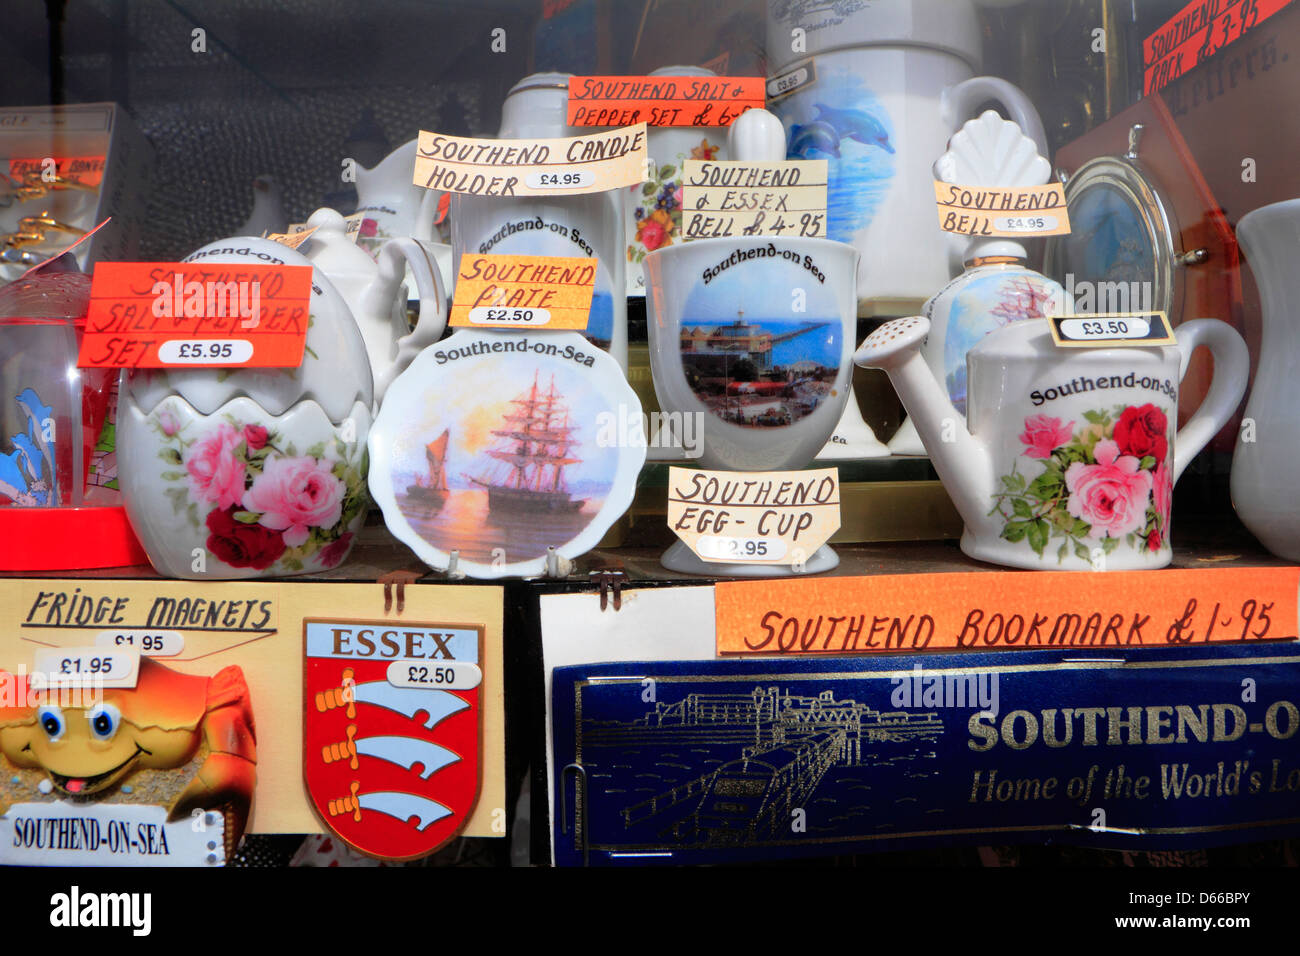 Souvenirs of Southend-on-sea in gift shop window. - Stock Image